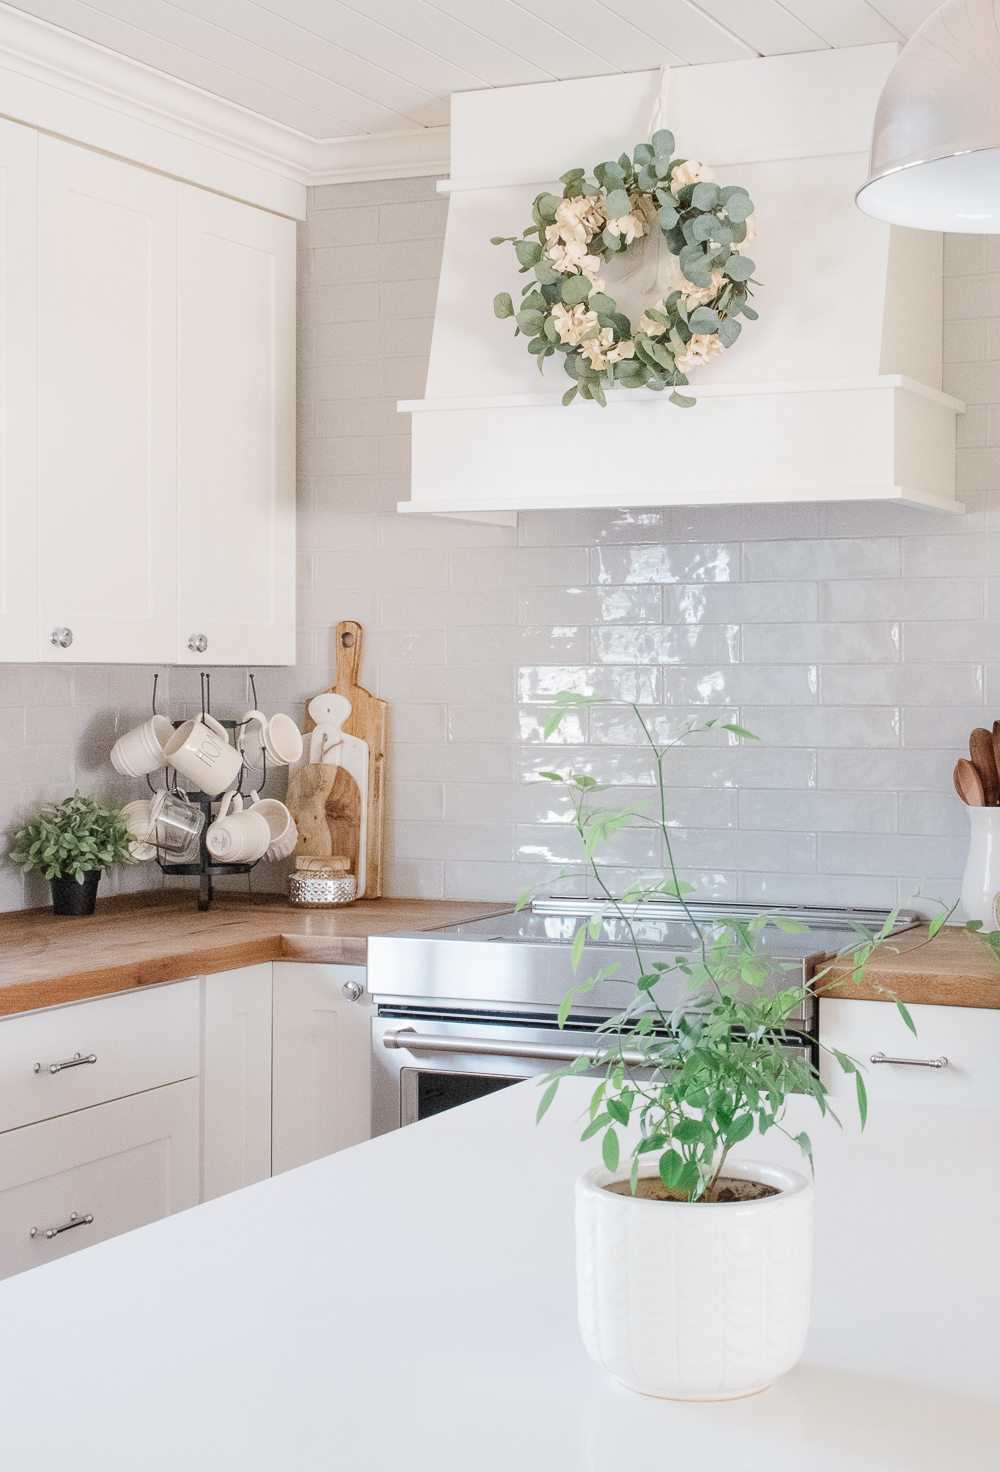 white kitchen, butcher block, wood range hood, wreath on range hood